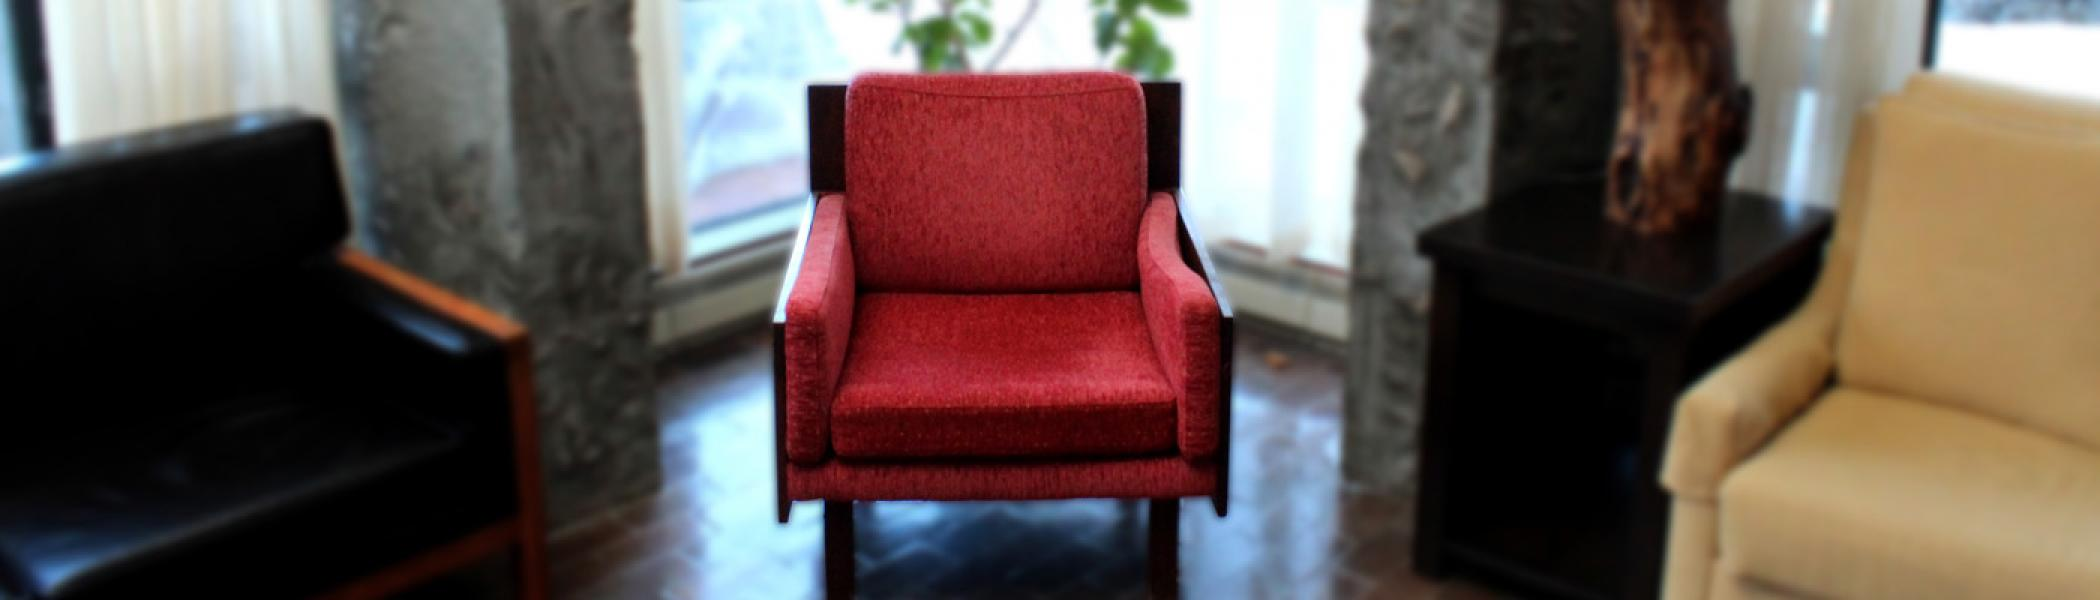 Image of red chair from alumni house